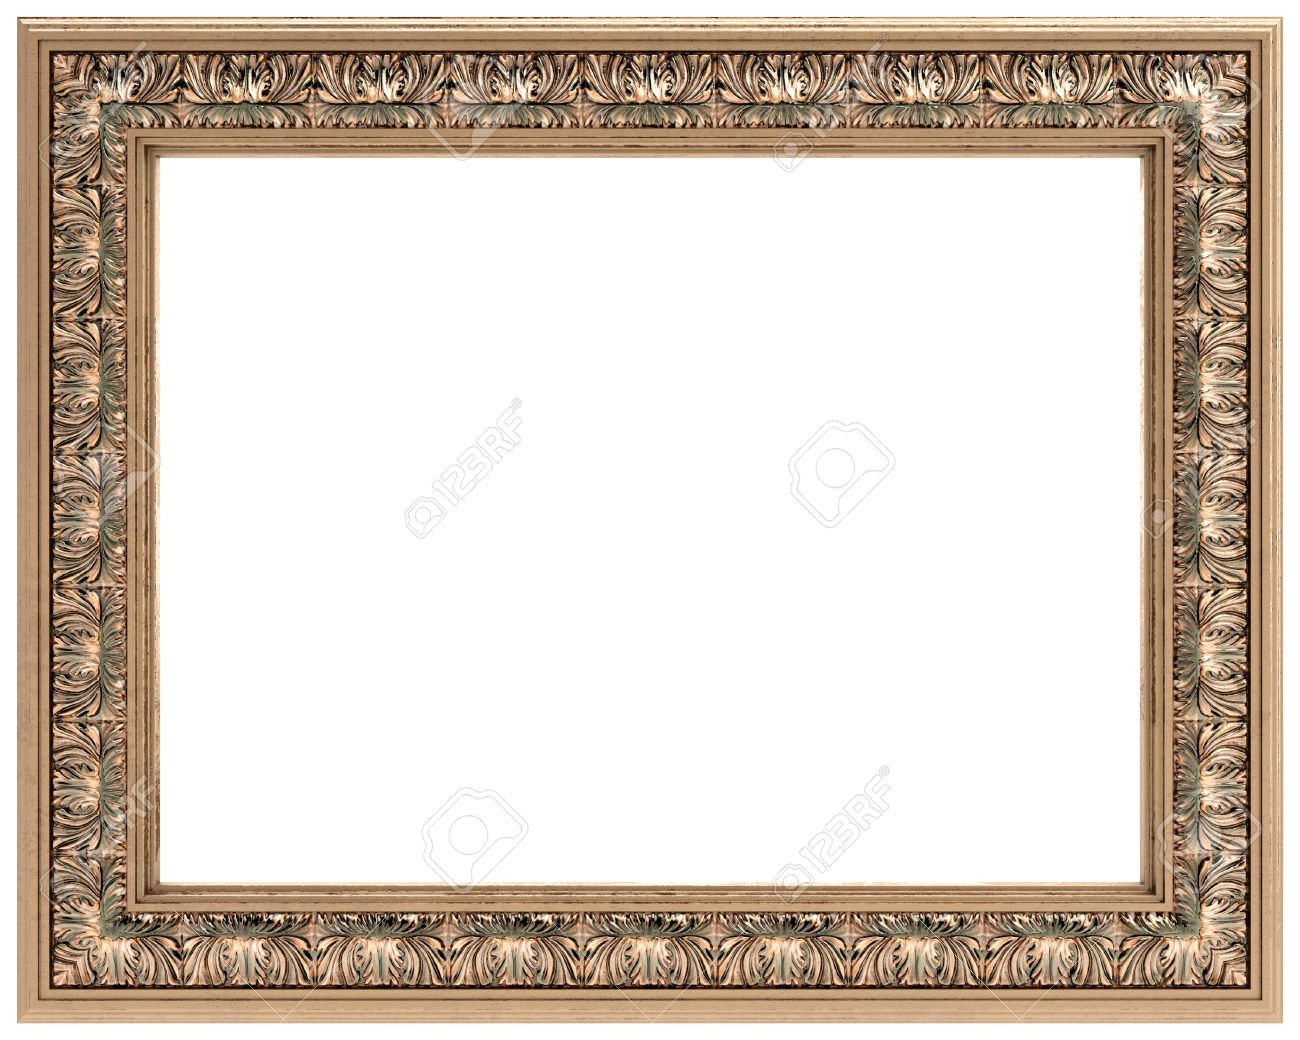 mirror cover rectangular gold carved frame for a mirror or a picture stock photo